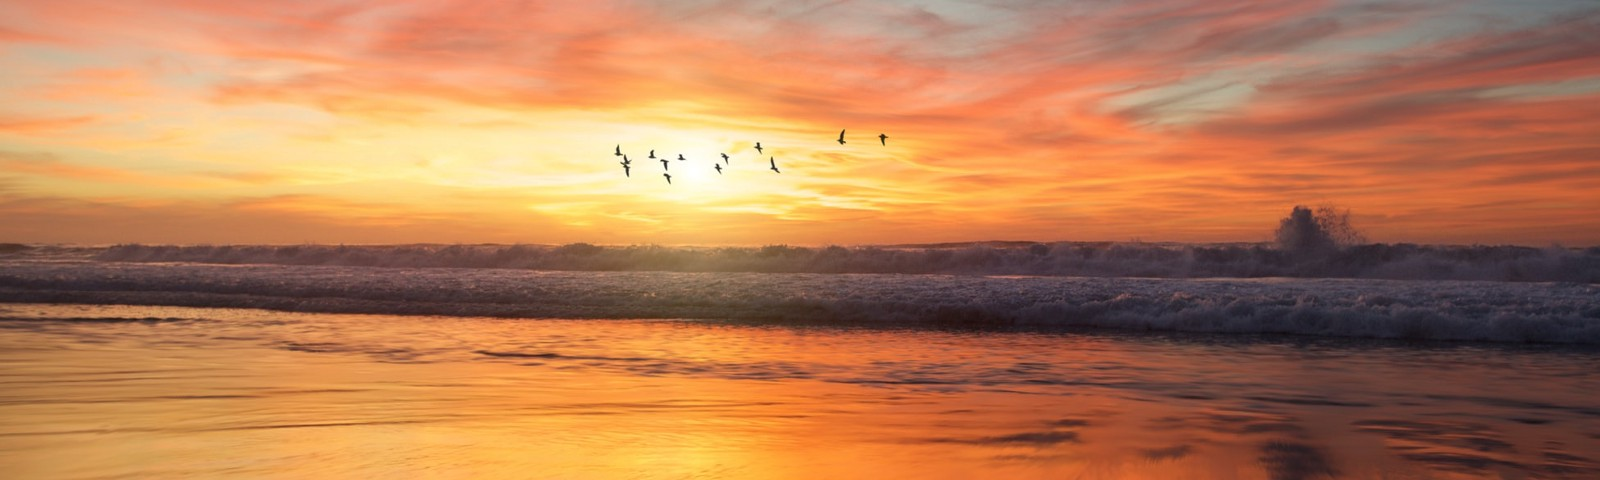 Gulls flying over the ocean at sunset